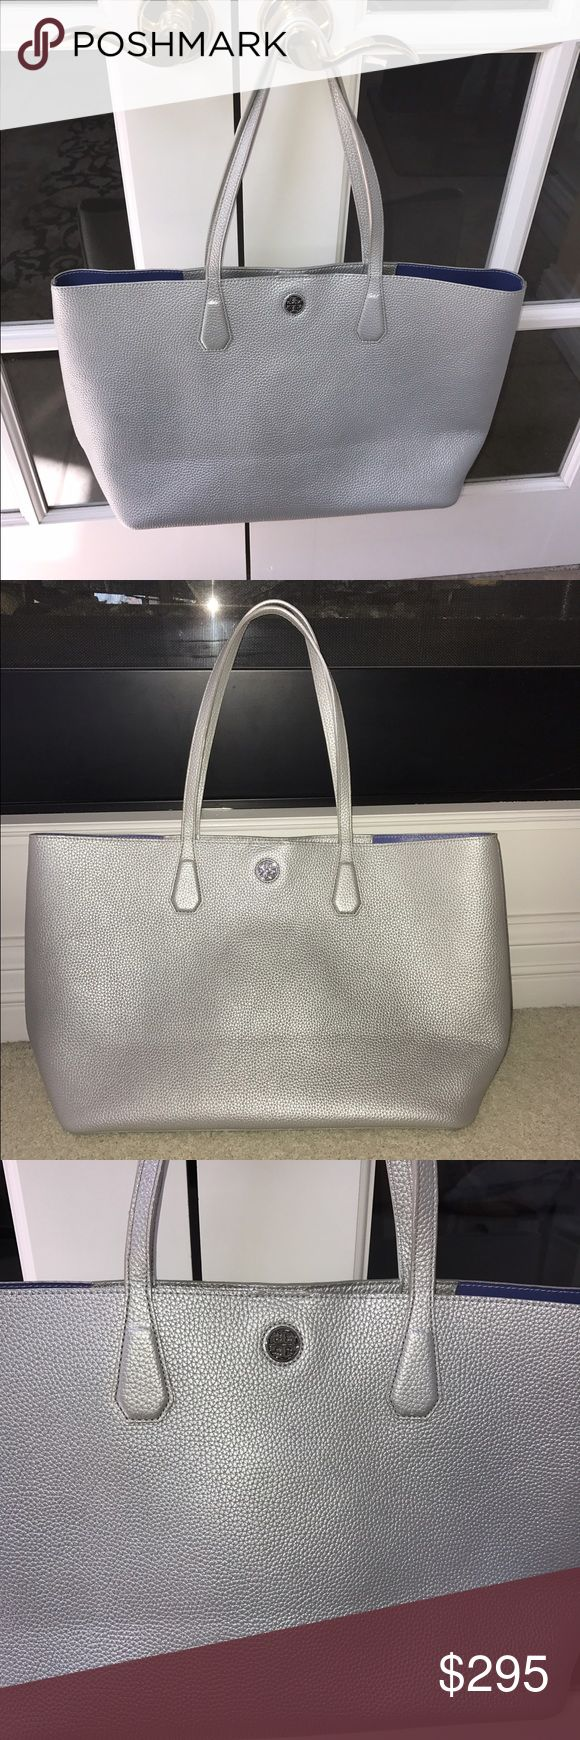 Tory Burch Perry Metallic Silver Tote Bag Tory Burch Metallic silver tote bag. NWOT. Does has one tiny scuff on front of bag shown in picture but hardly noticeable. Measurements 15 inches long x 11.5 inches high x 6 inches wide. 💕💕💕 Tory Burch Bags Totes